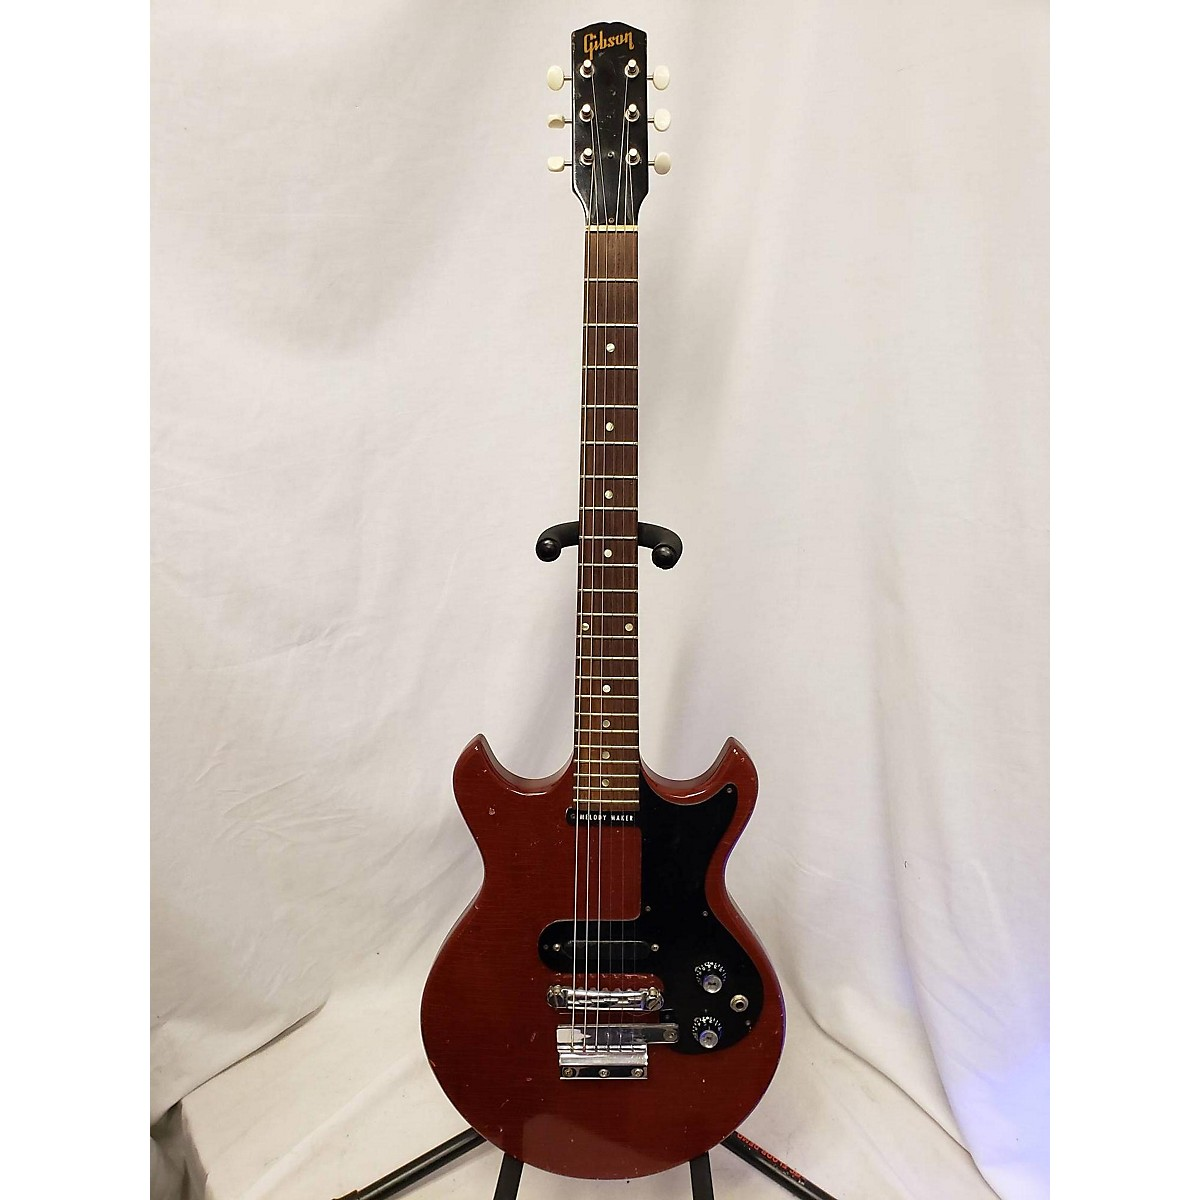 Gibson 1965 Melody Maker Solid Body Electric Guitar